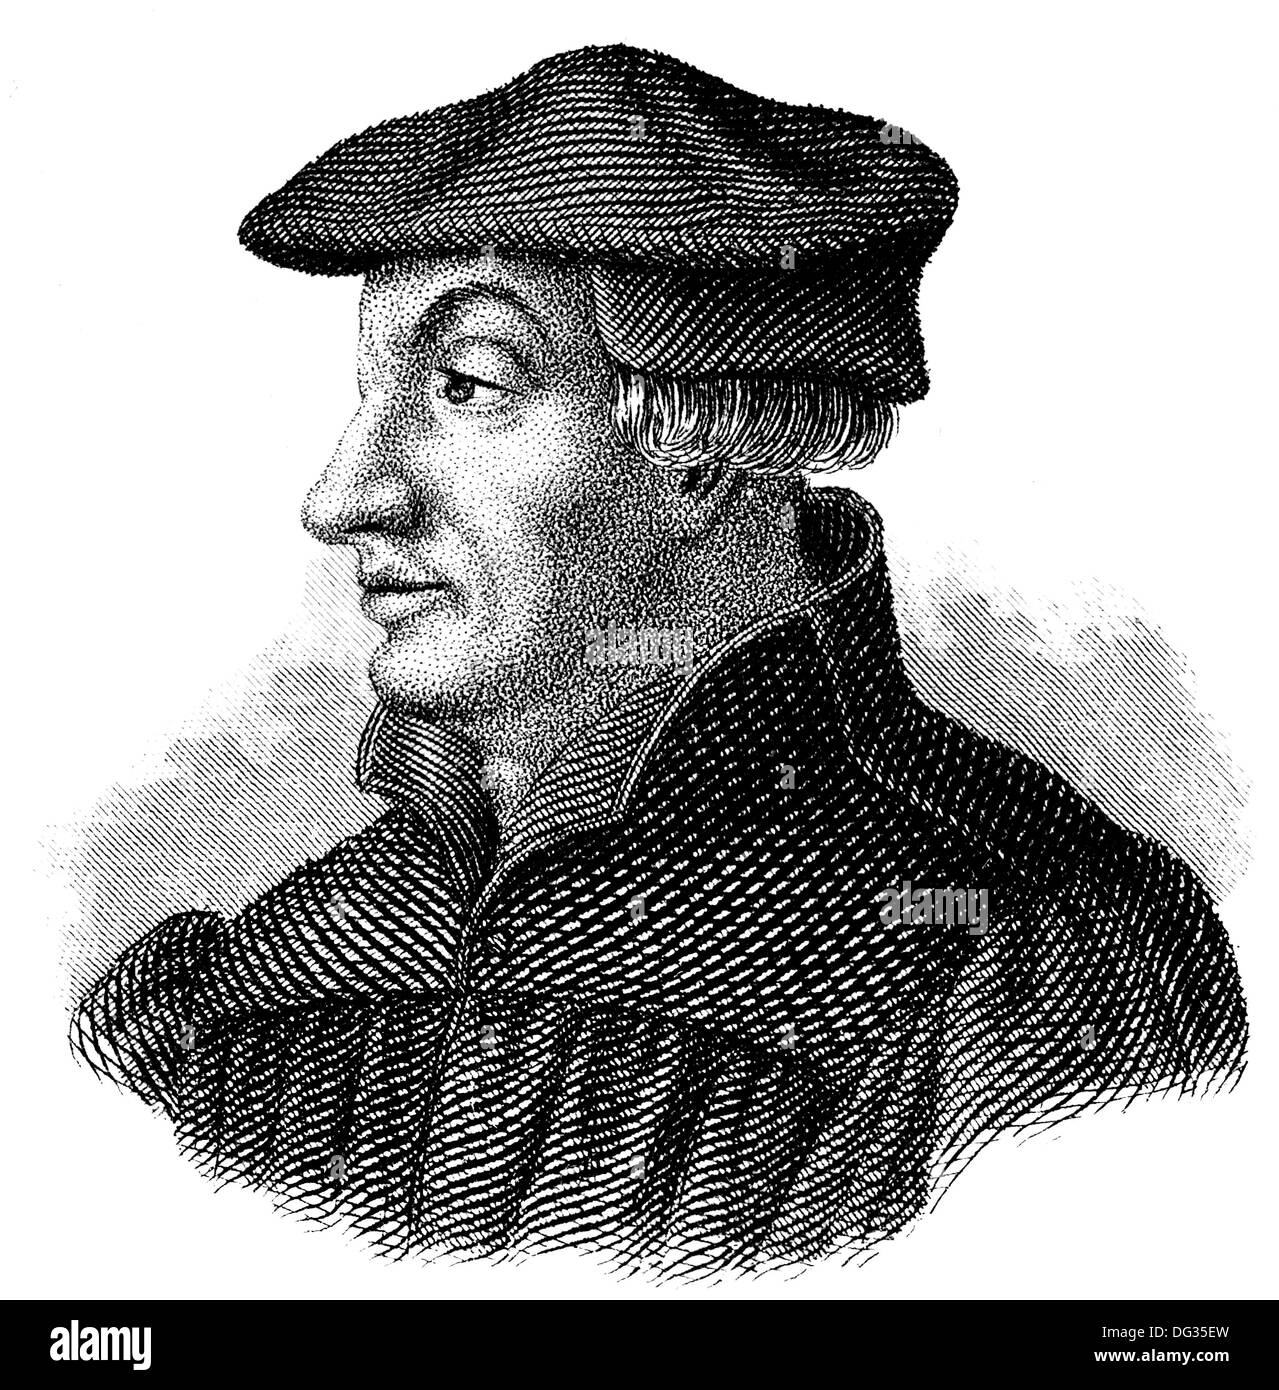 Ulrich Zwingli, 1484 - 1531, a Swiss theologian and reformer of Zurich - Stock Image